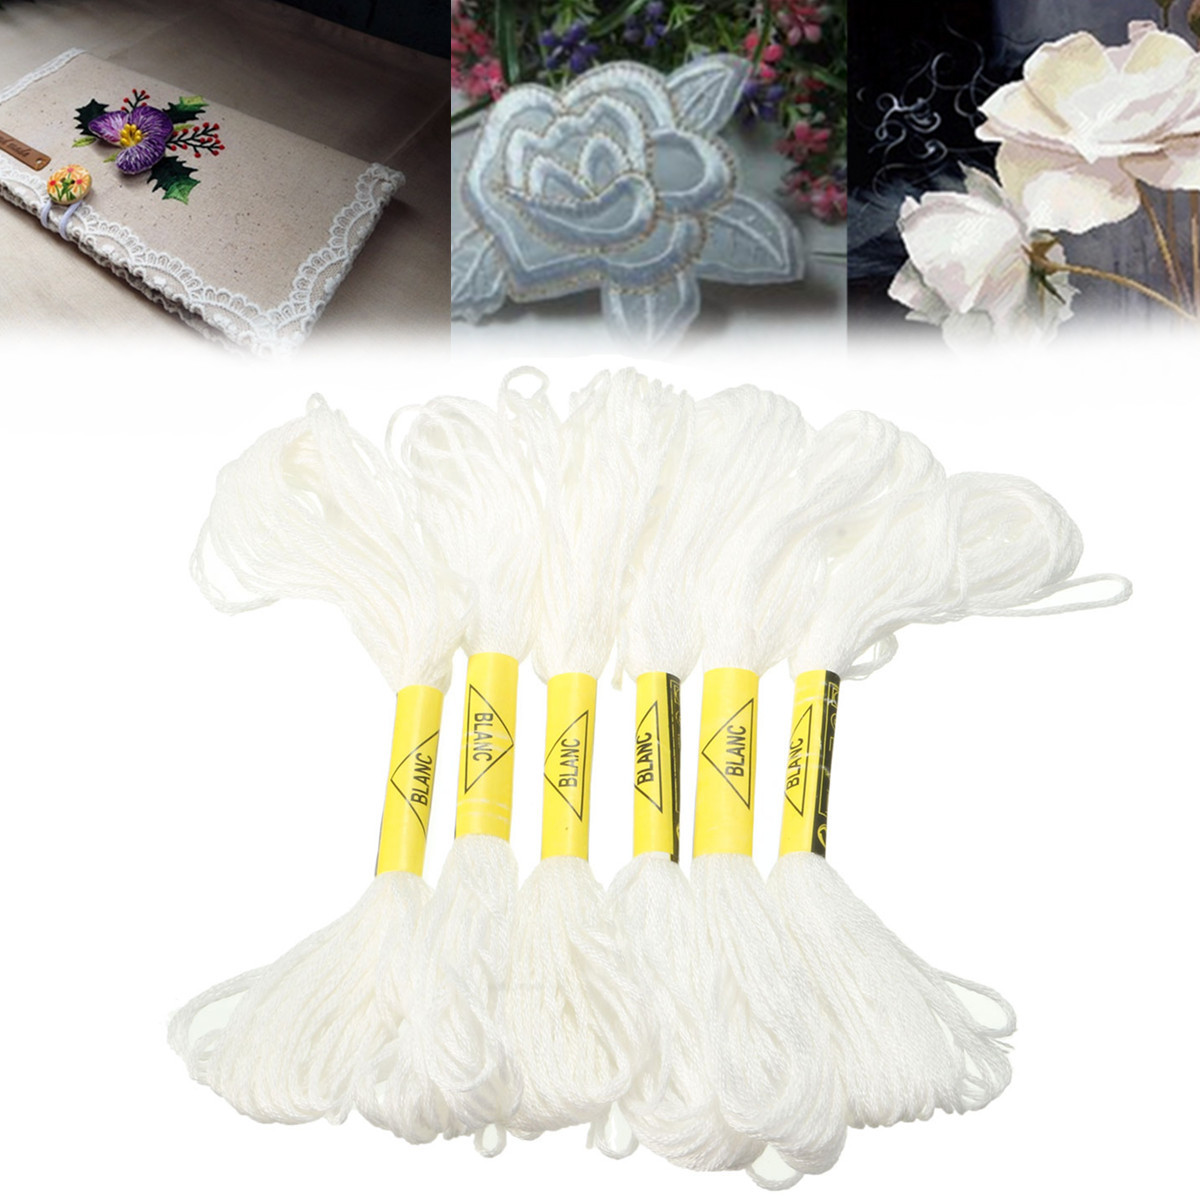 6Pcs 8Meters Cross Stitch Cotton Sewing Skeins Craft Embroidery Similar DMC Threads Floss Kit DIY Sewing Tools Accessories